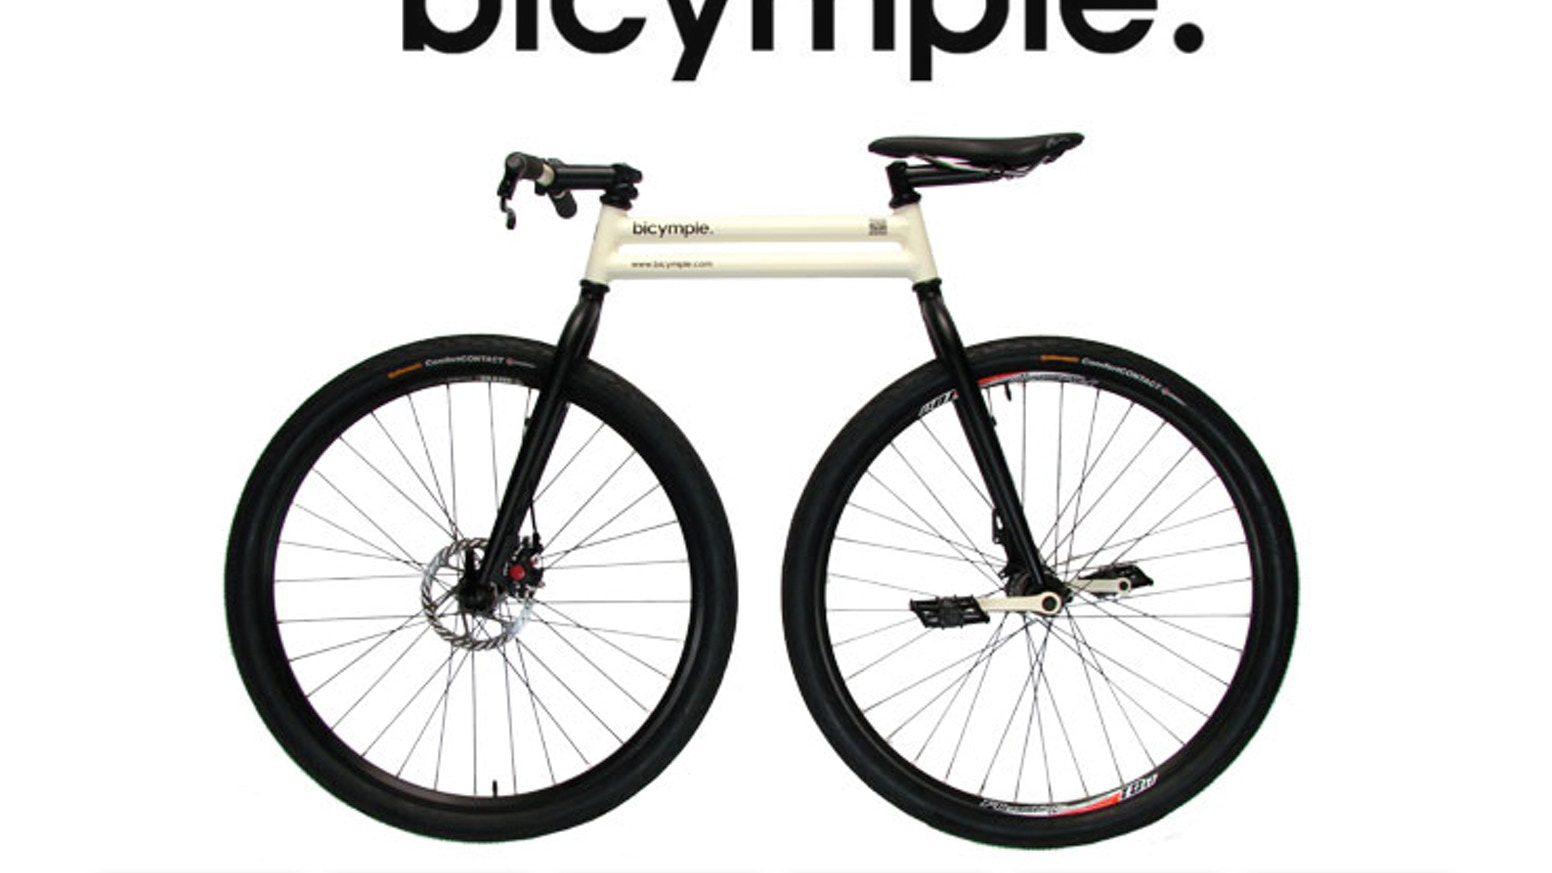 A bicycle, simplified.